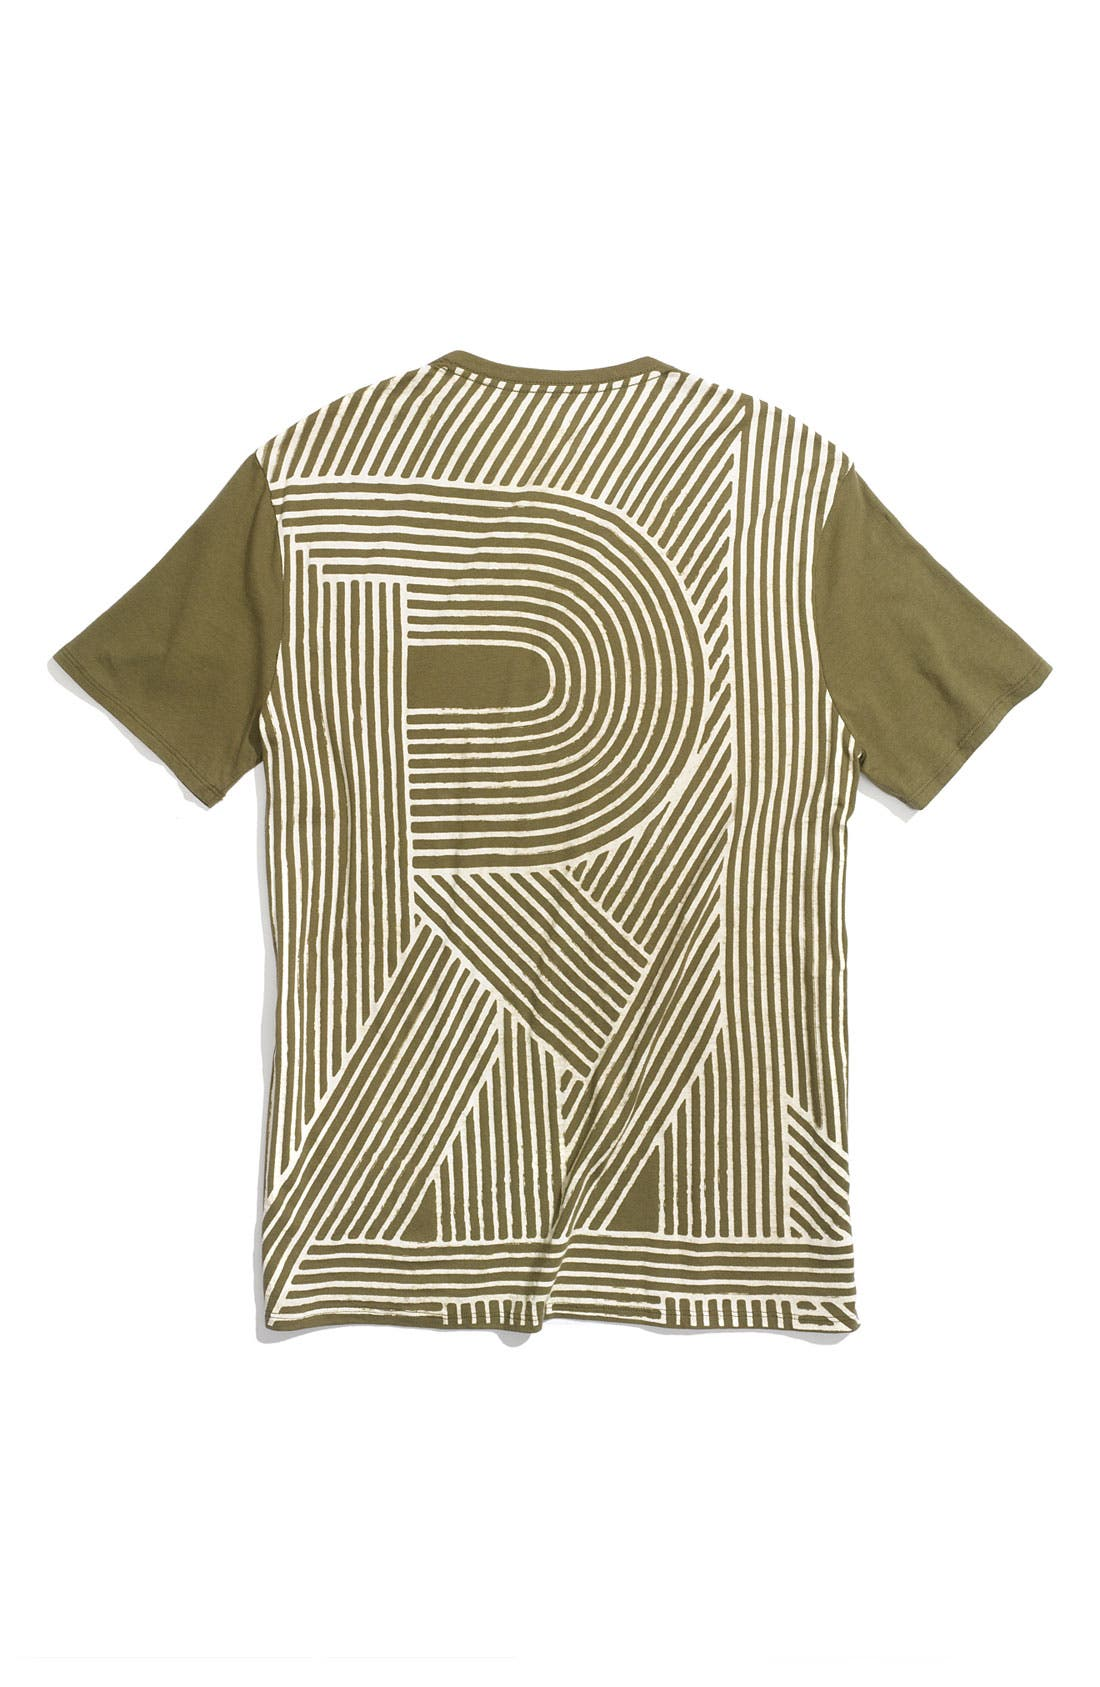 Main Image - R44 'Dazzle' Trim Fit Organic Cotton T-Shirt (Men)